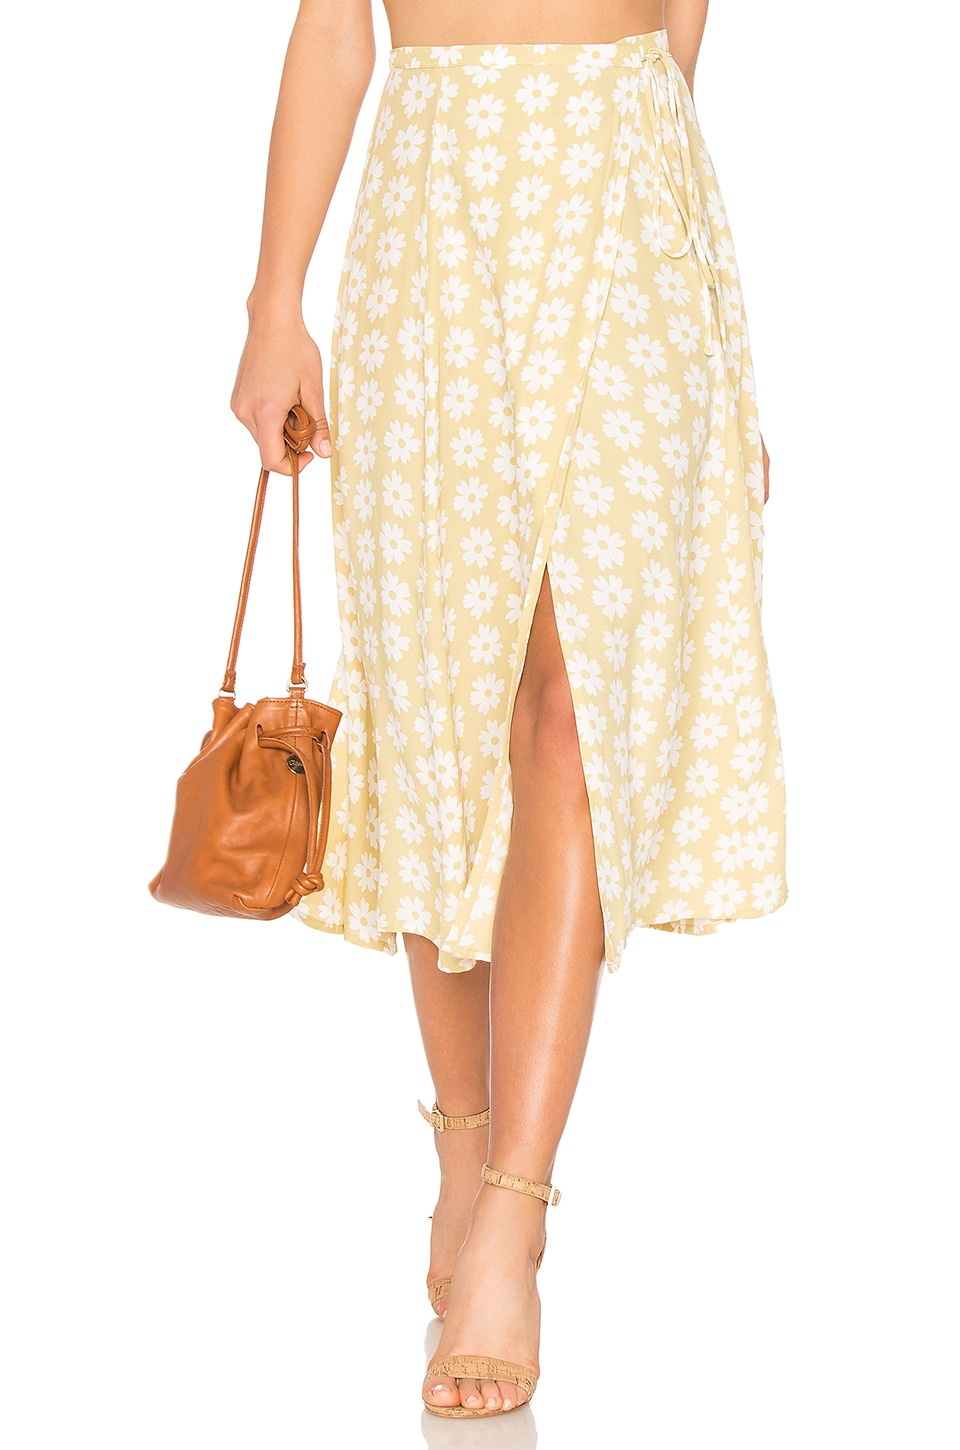 FAITHFULL THE BRAND Marieta Skirt in Afternoon Floral